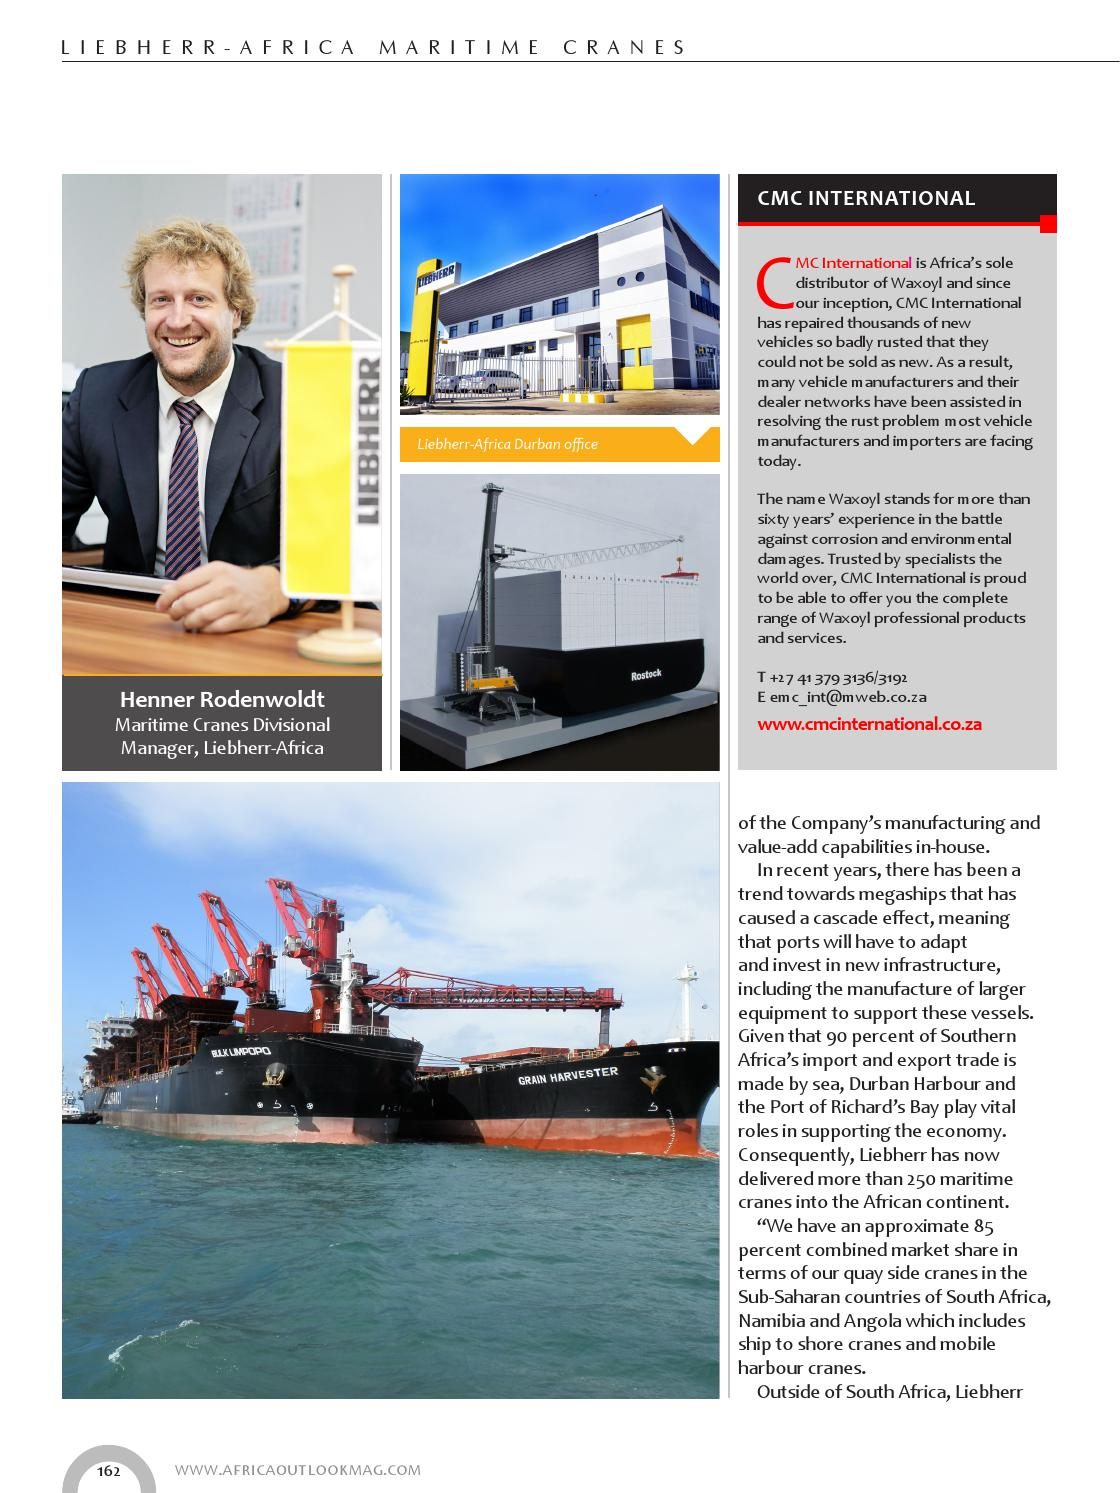 Africa Outlook - Issue 27 by Outlook Publishing - issuu